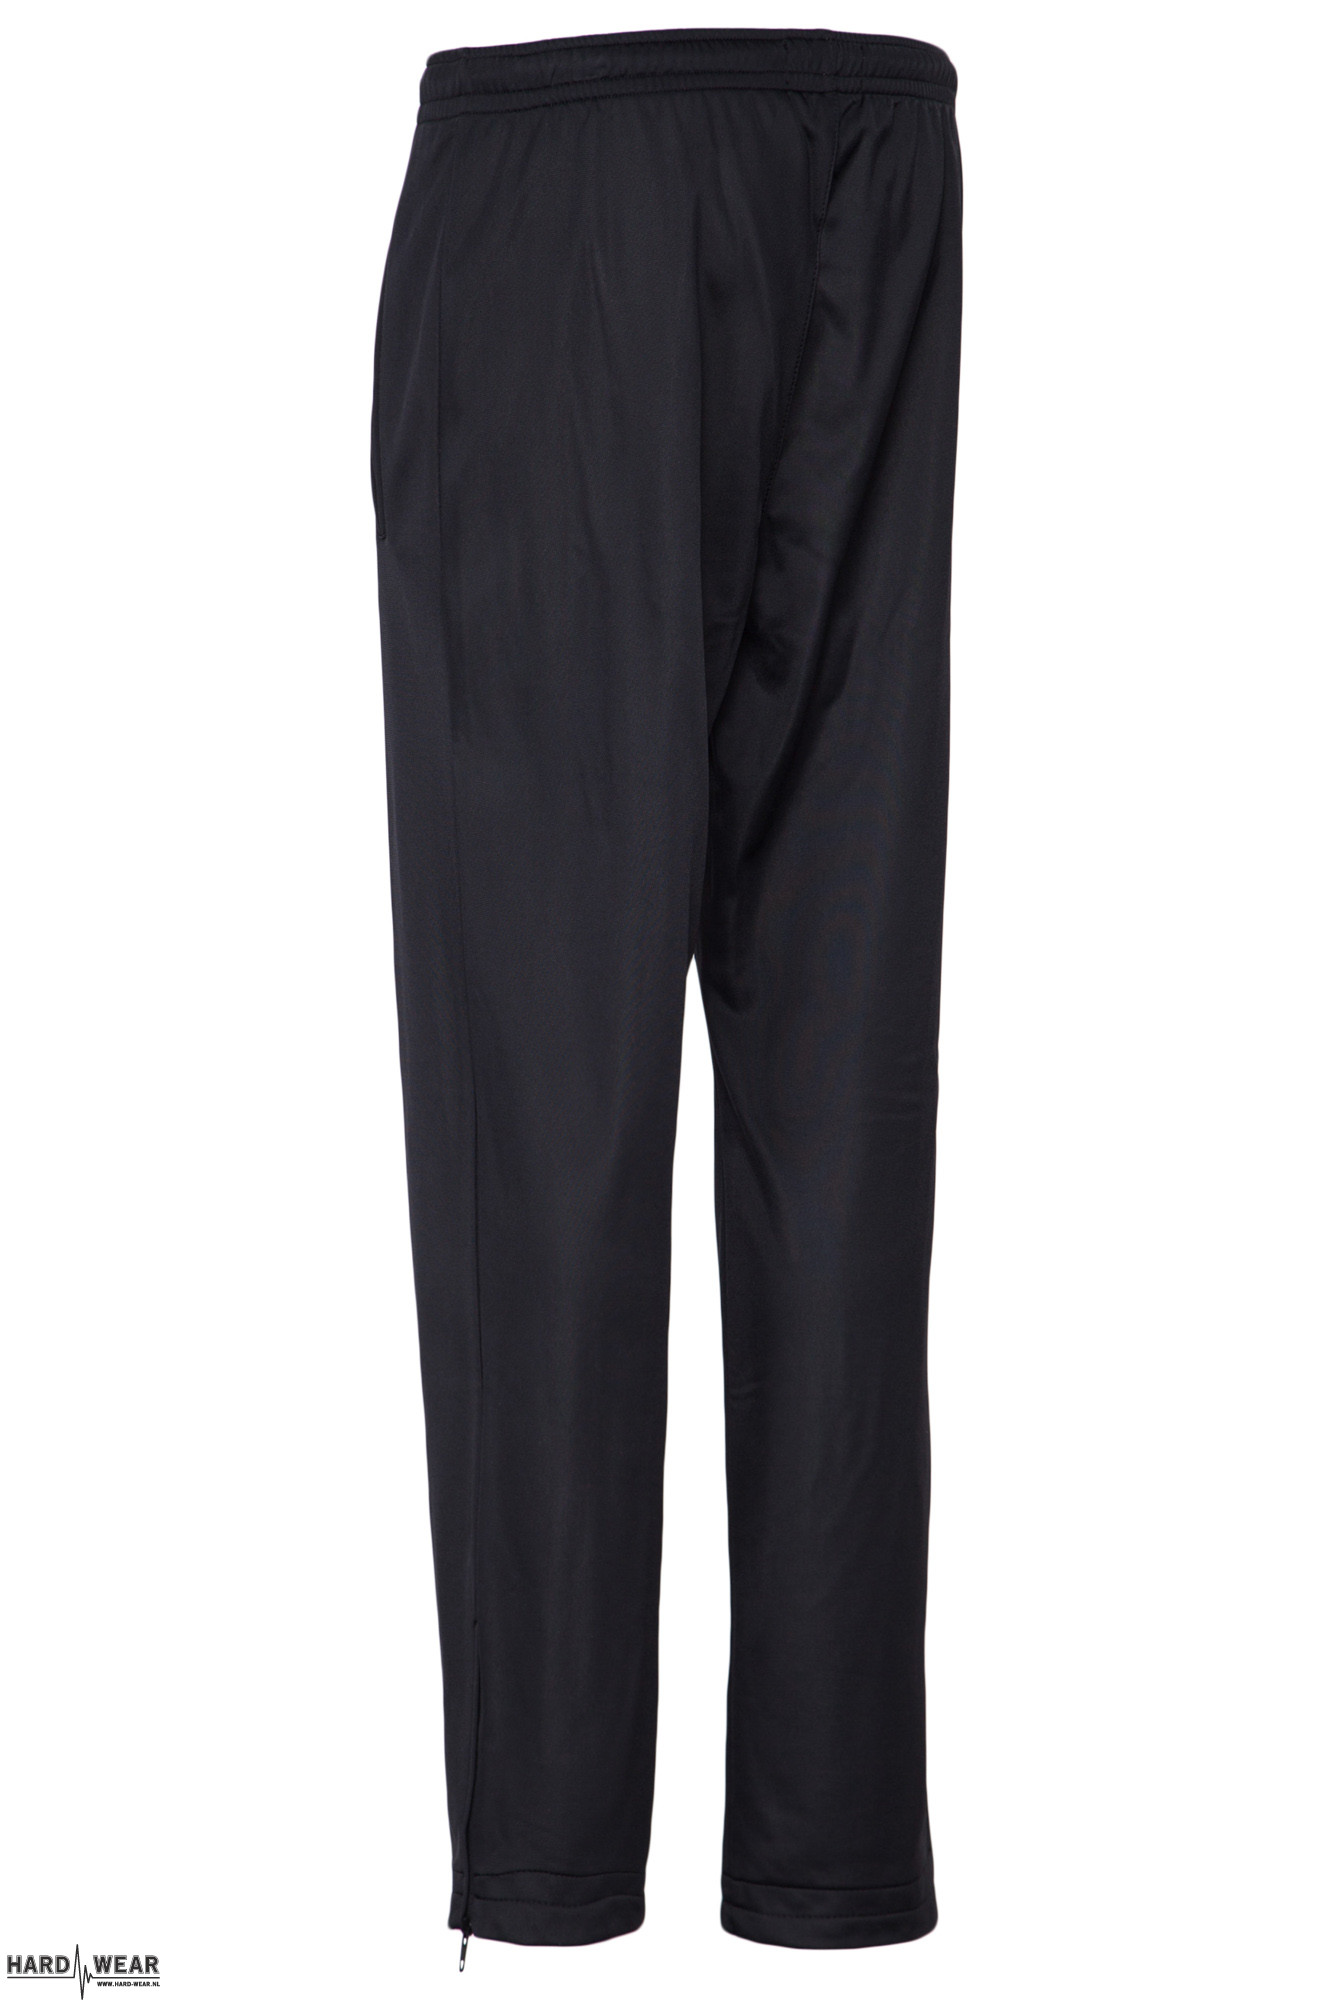 Australian pants uni | black